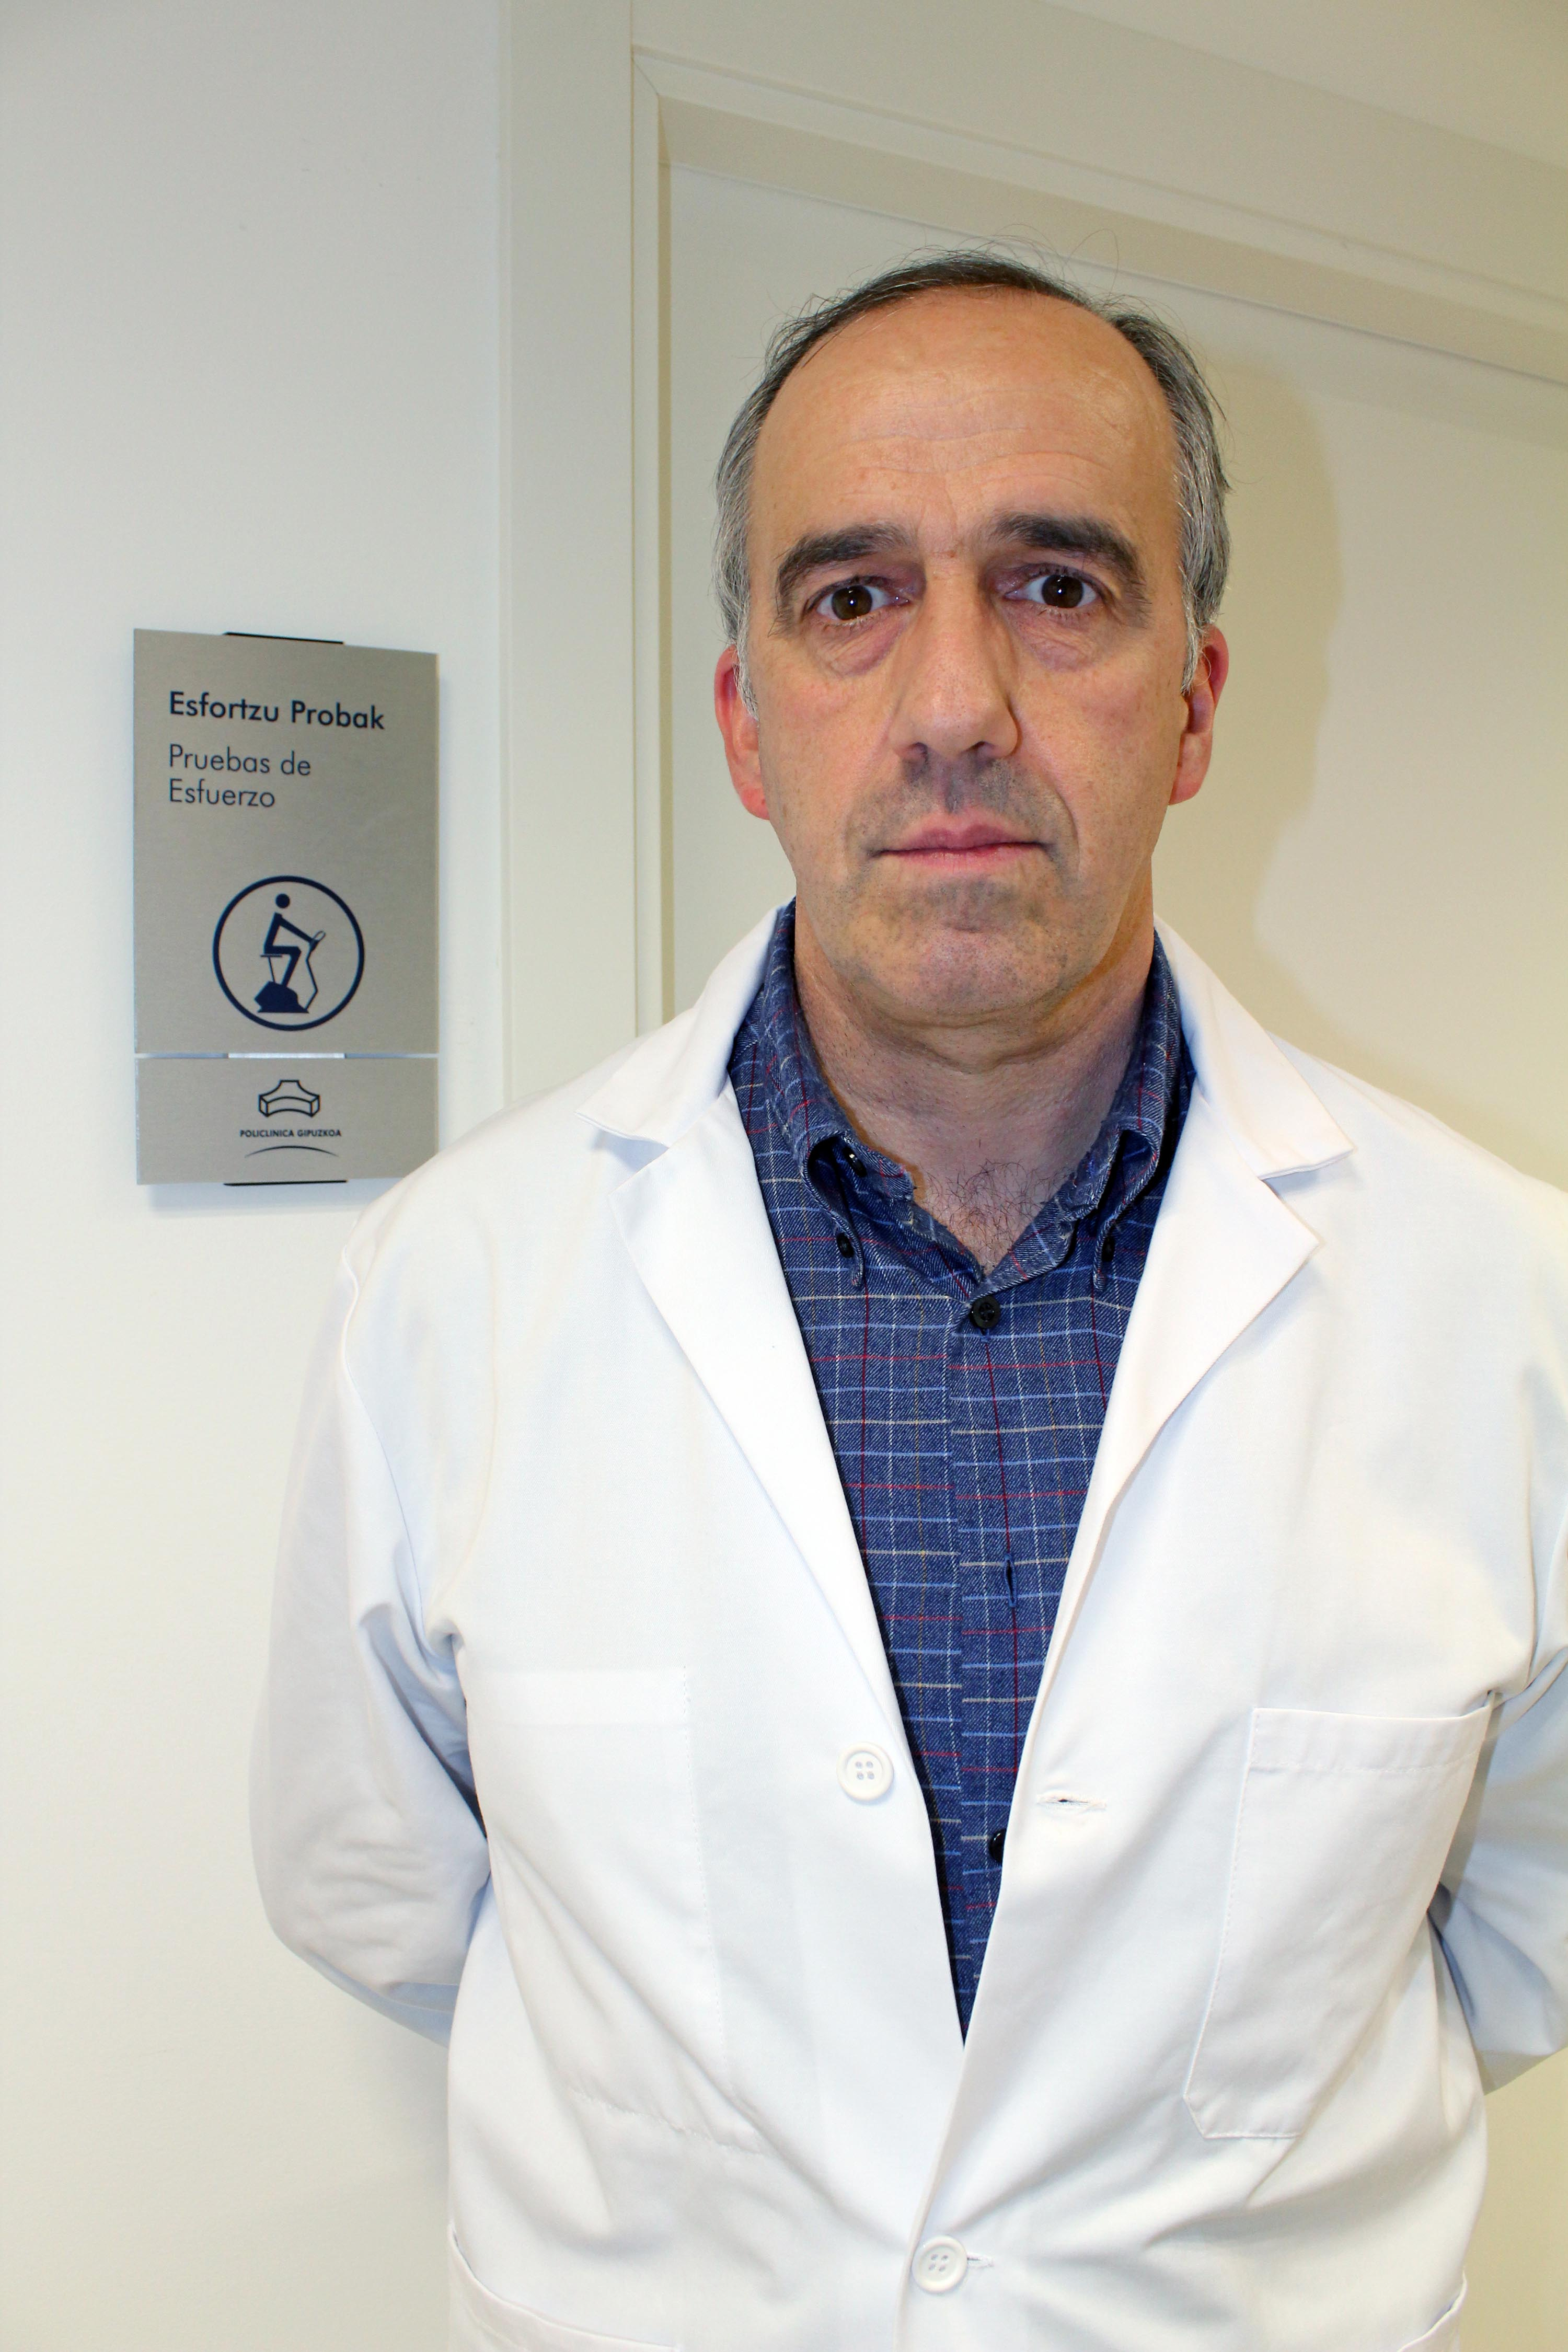 Dr. Izaguirre